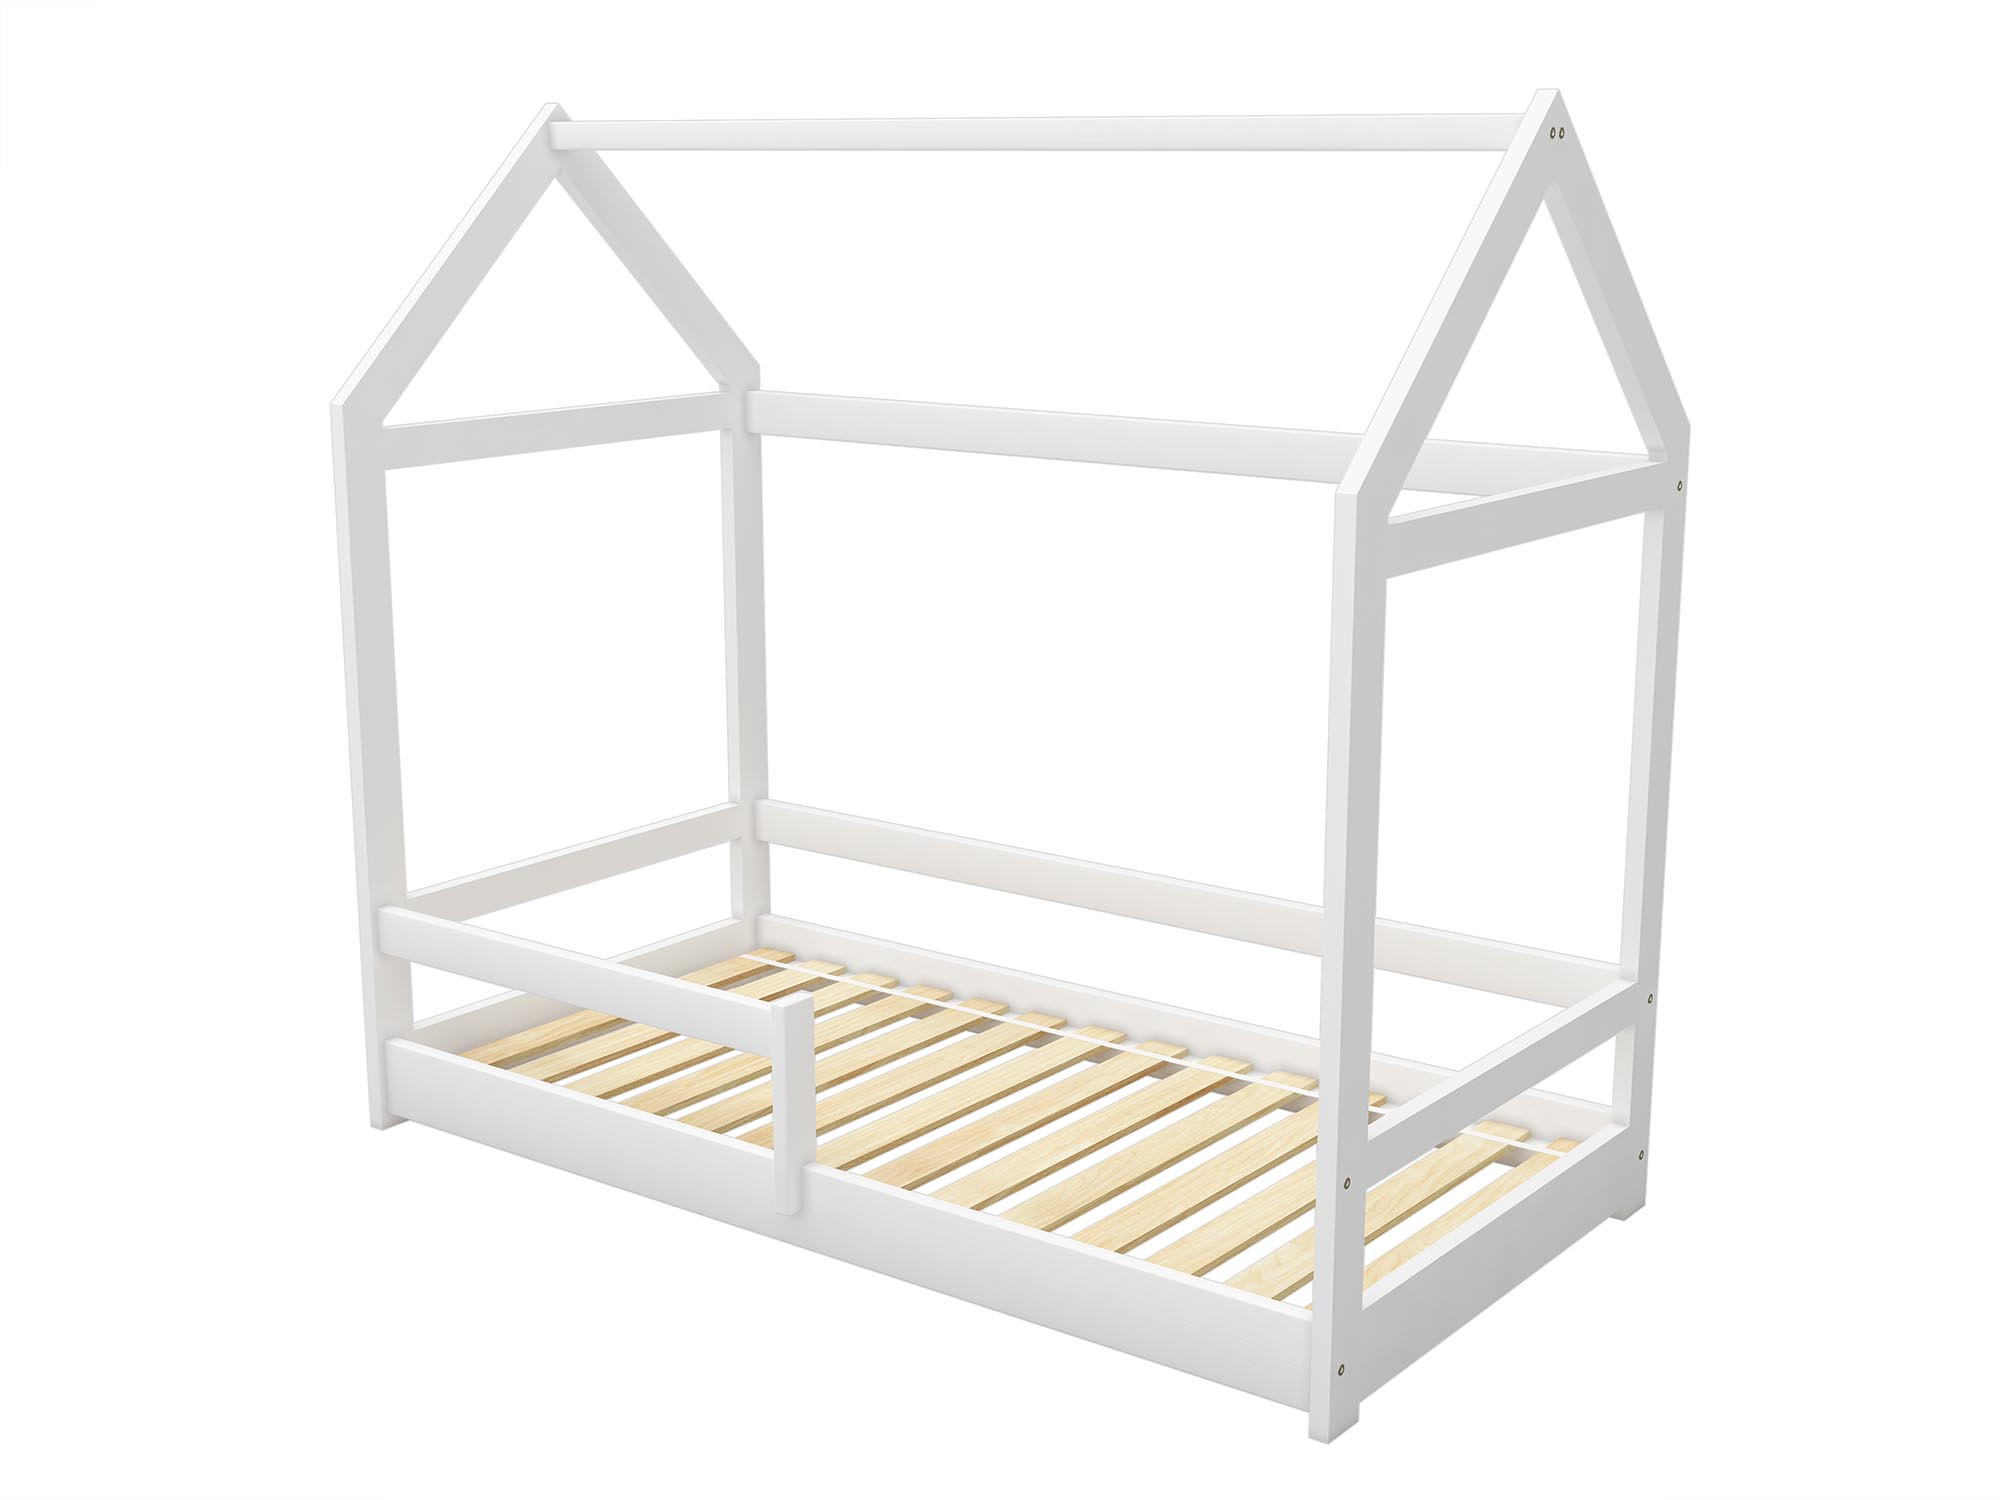 Children Bed Frame House Bed Scandinavian Style 4 Dimensions White Natural Ebay